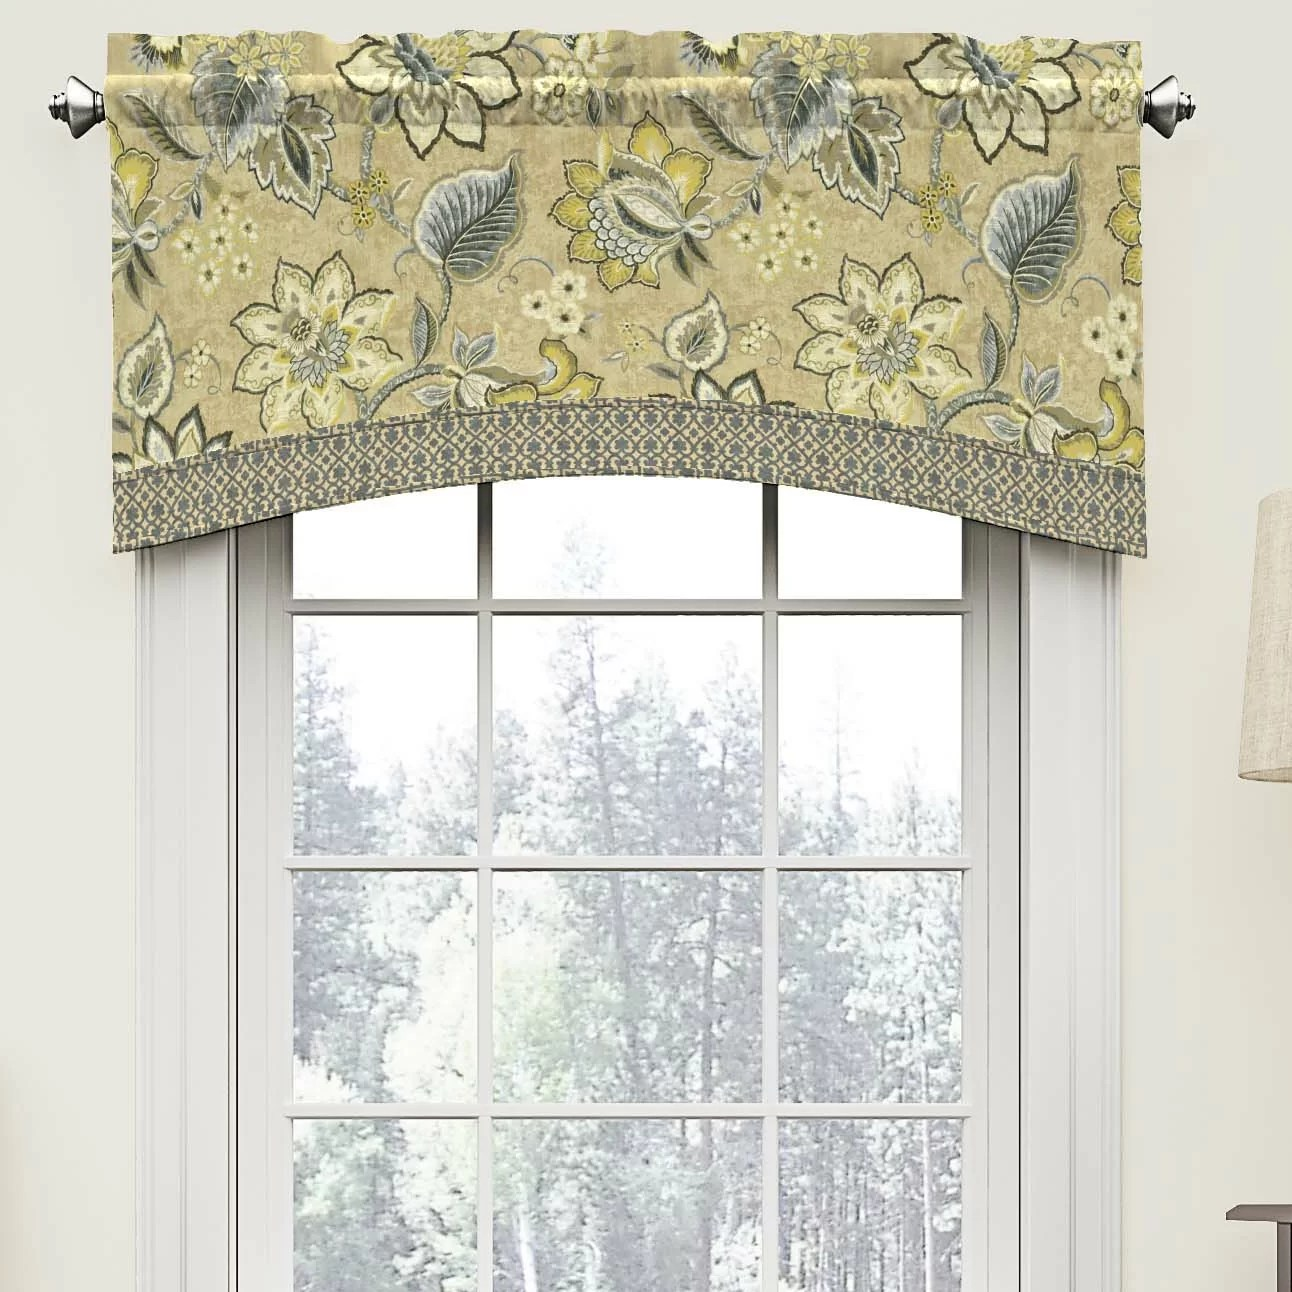 Waverly Brighton Blossom 52 Arched Curtain Valance